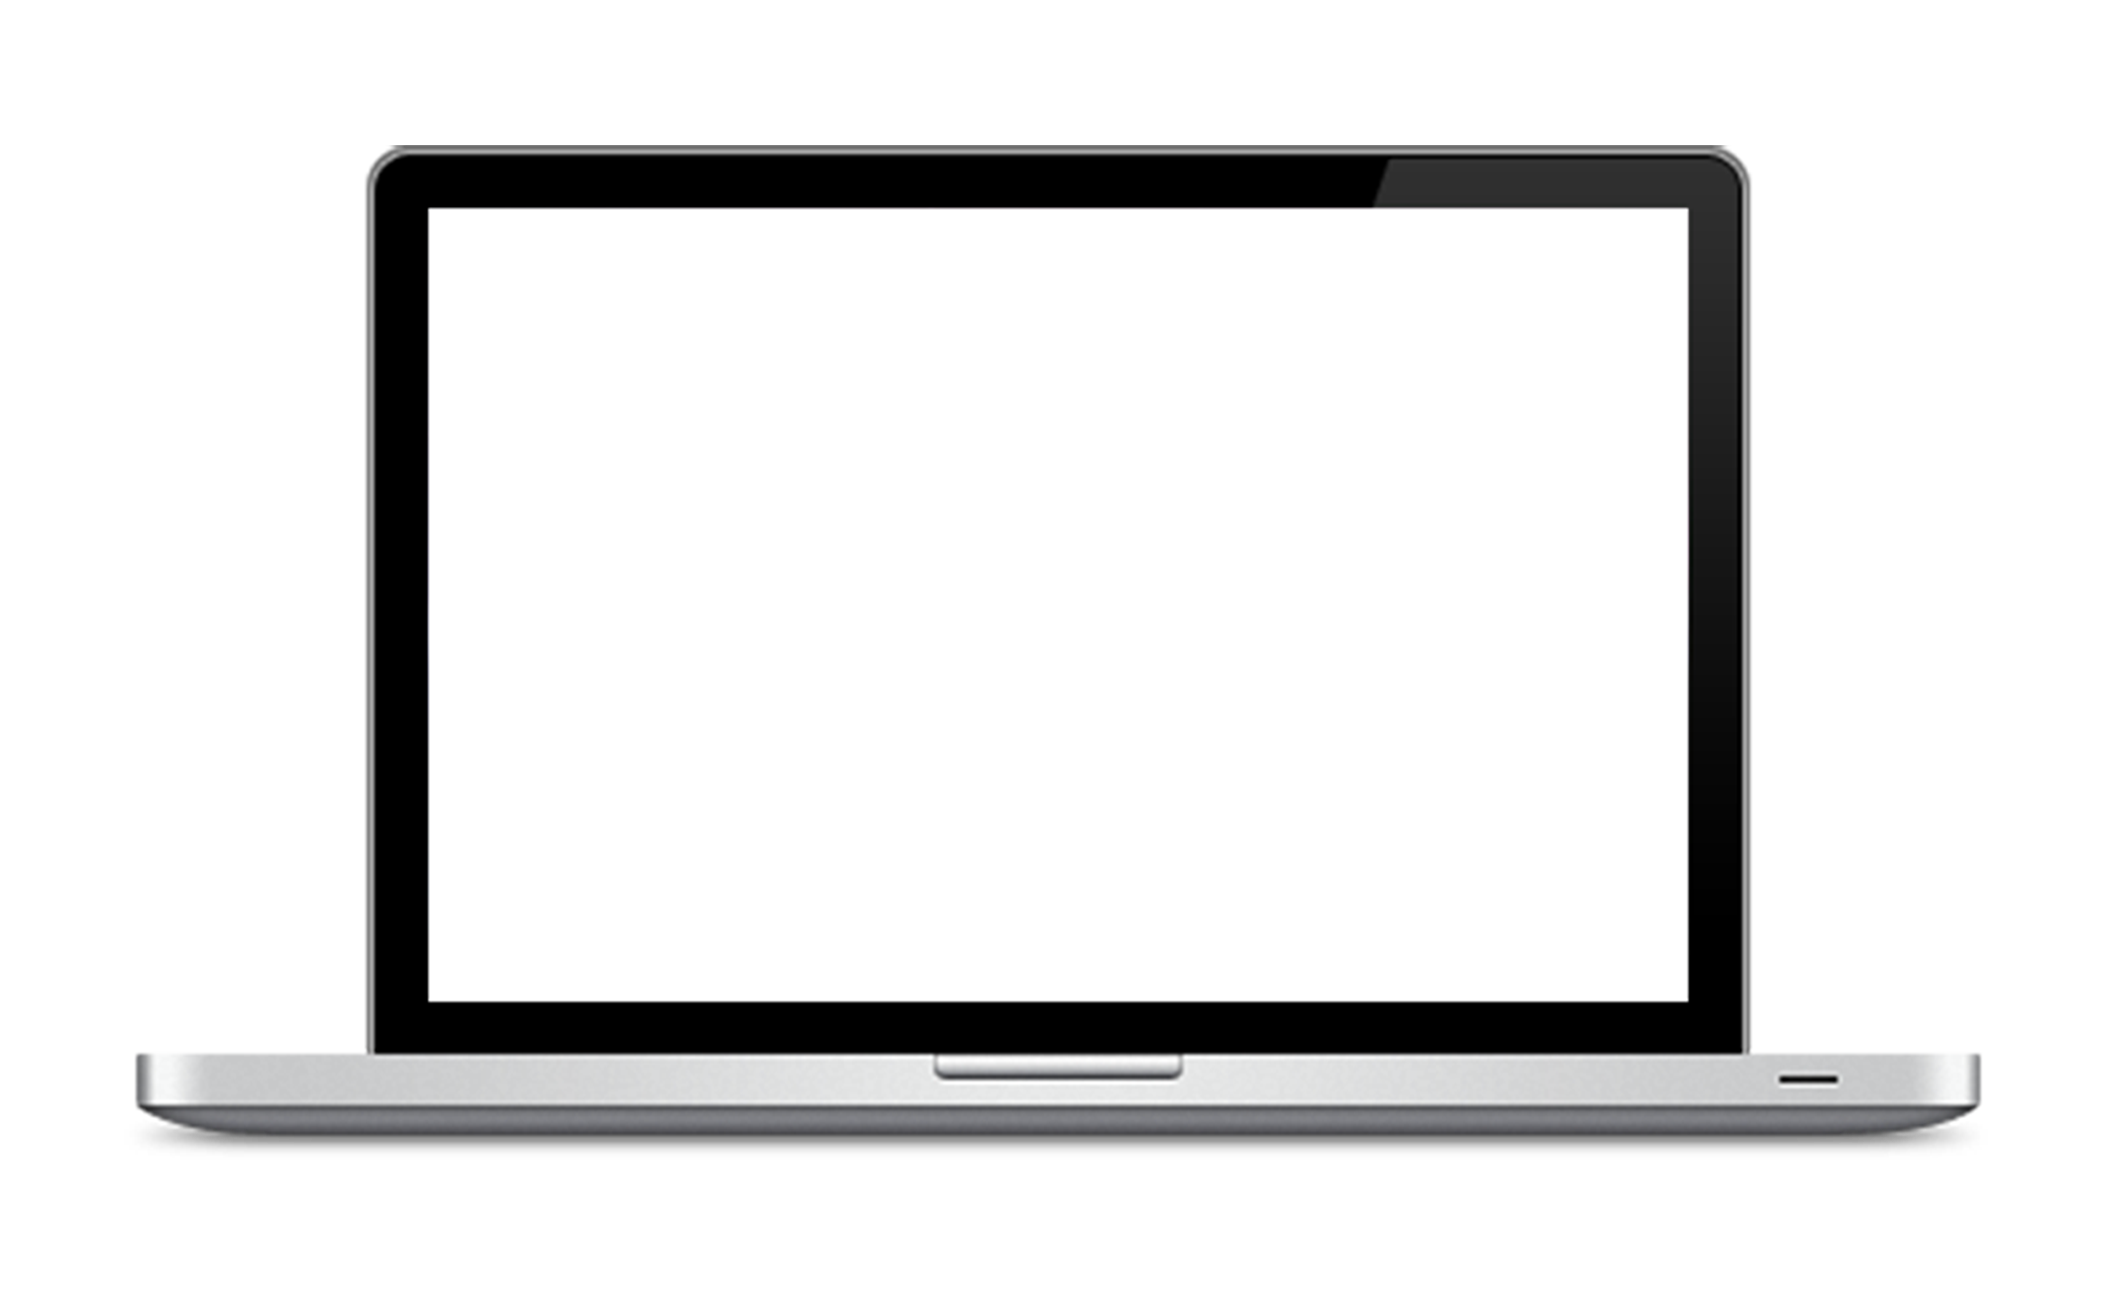 Background Pictures For Laptop Png - Mac Laptop Transparent Background PNG Image Free download ...